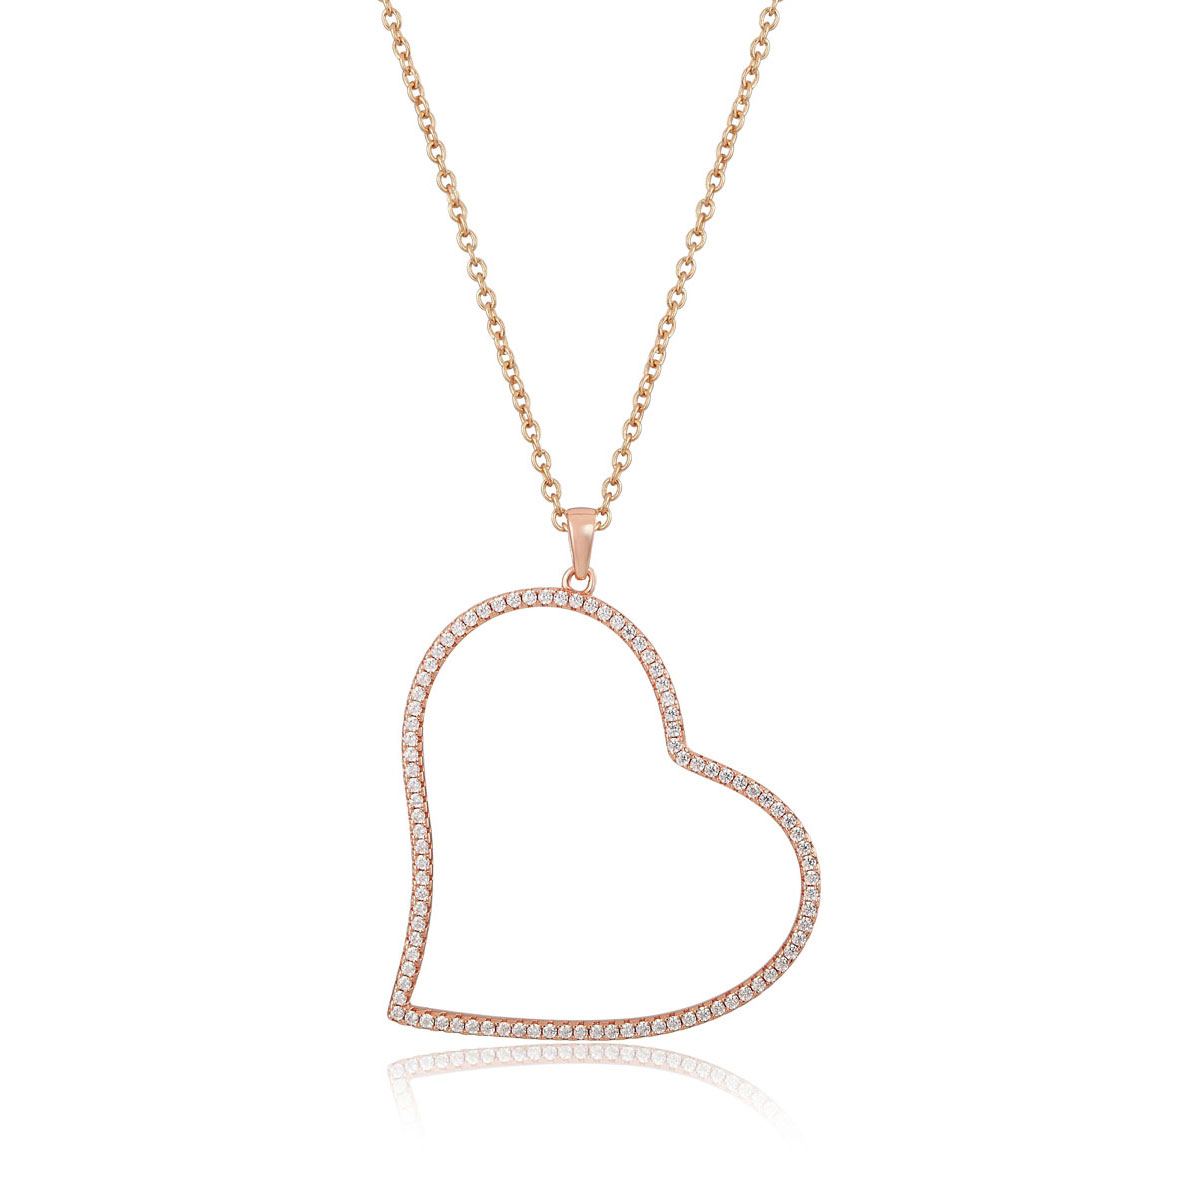 Cashs Ireland, Tender Heart 18k Gold and Crystal Necklace